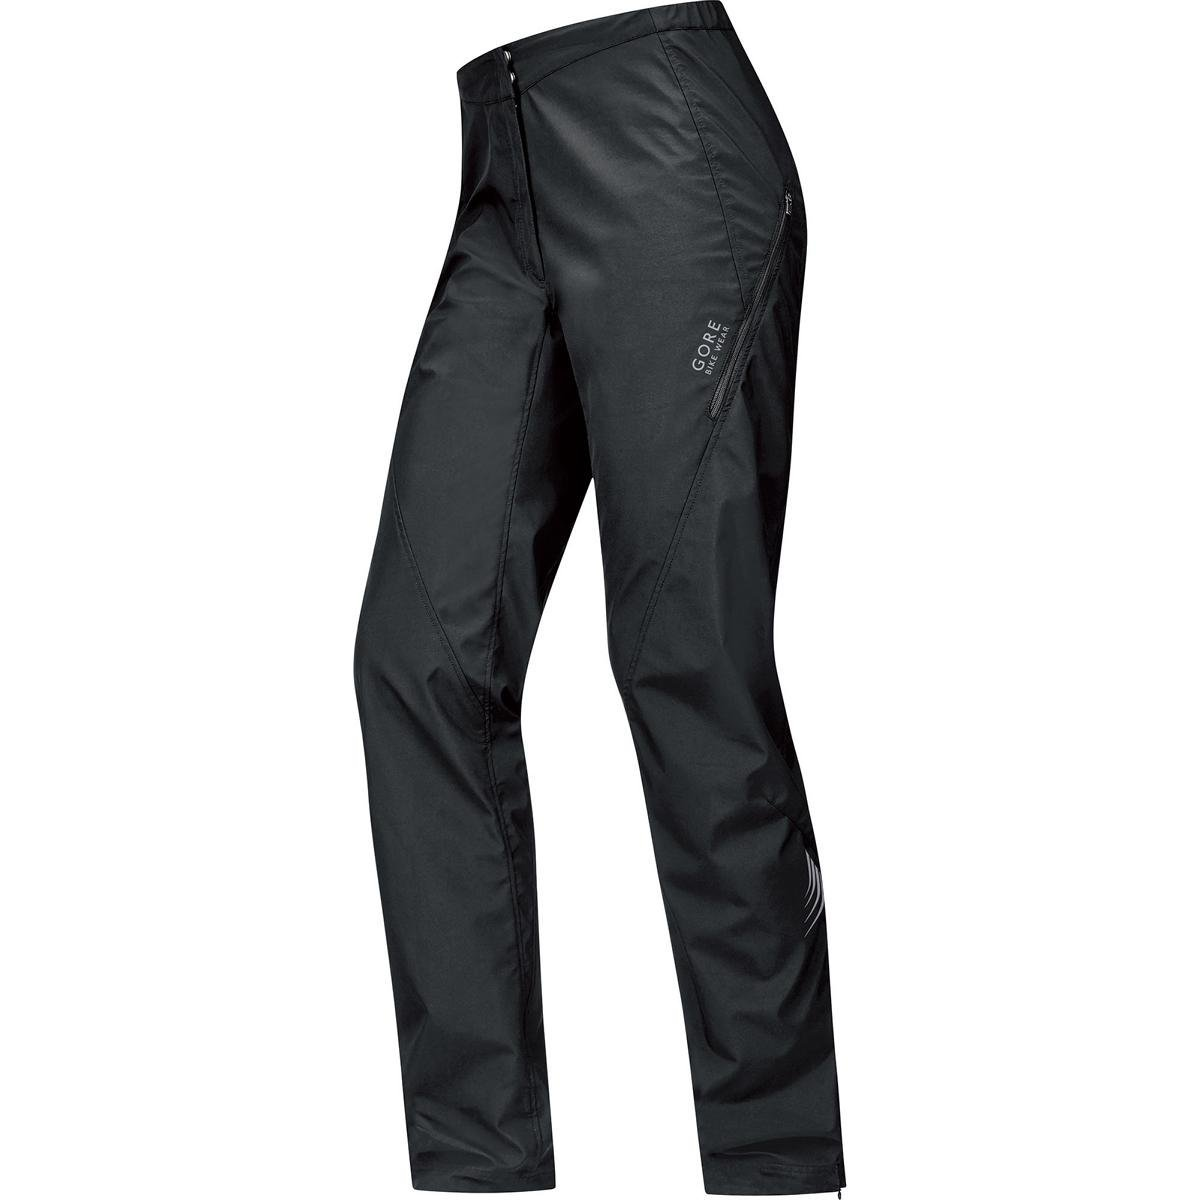 GORE BIKE WEAR, Pantaloni Ciclismo Donna, Minimal e leggeri, GORE WINDSTOPPER Active Shell, WS AS, PWELEL PWELEL9900309